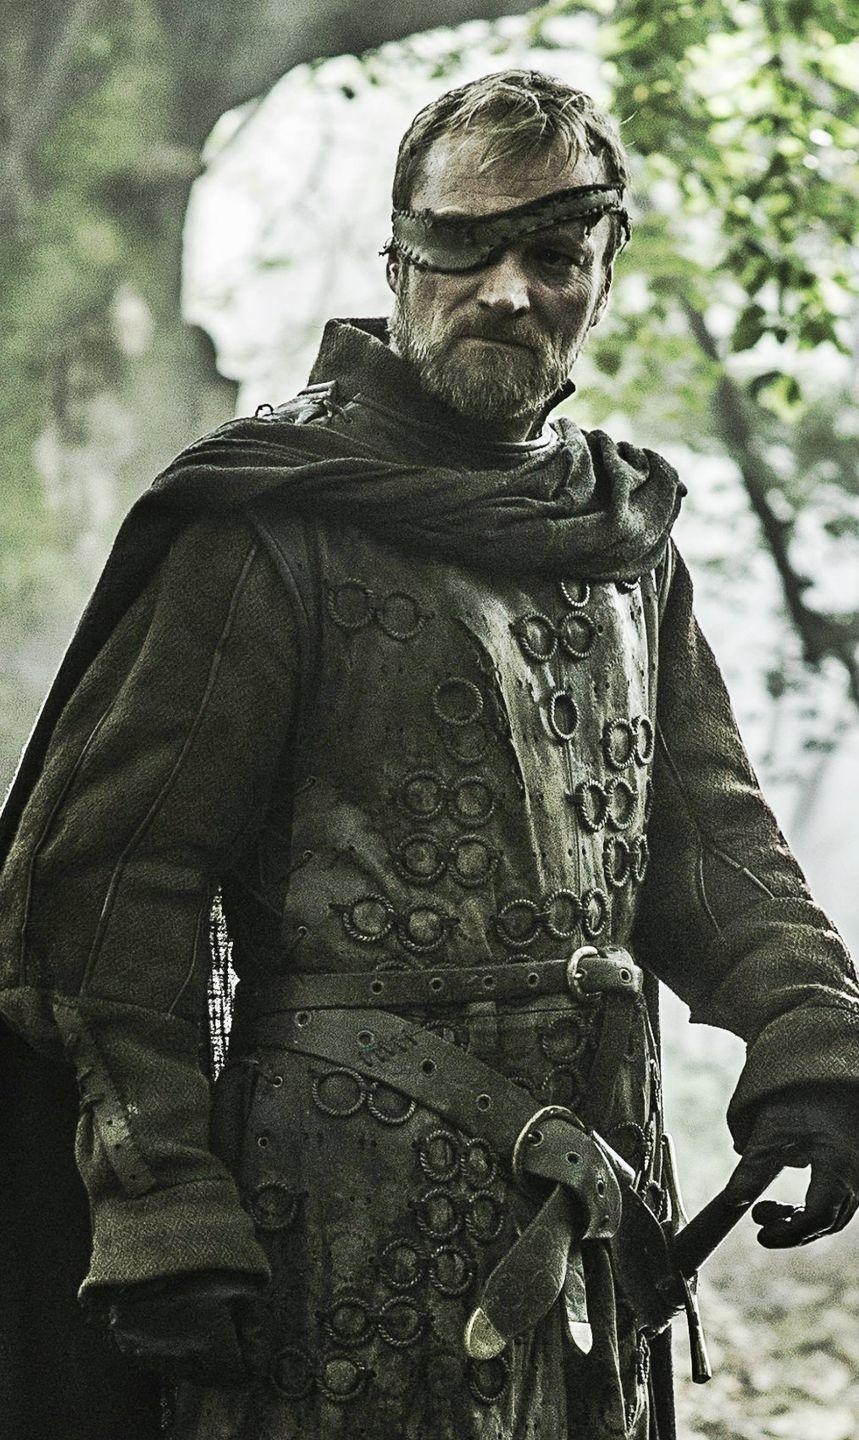 """<p>Beric evaded death more times than we can count, and this costume will have you feeling totally invincible. Use a few yards of dark grey fabric to replicate his cape and eye patch.</p><p><a class=""""link rapid-noclick-resp"""" href=""""https://go.redirectingat.com?id=74968X1596630&url=https%3A%2F%2Fwww.halloweencostumes.com%2Fmens-wolf-warrior-costume.html&sref=https%3A%2F%2Fwww.womansday.com%2Fstyle%2Fg28762544%2Fdiy-game-of-thrones-halloween-costumes%2F"""" rel=""""nofollow noopener"""" target=""""_blank"""" data-ylk=""""slk:SHOP WARRIOR COSTUME"""">SHOP WARRIOR COSTUME</a> </p>"""